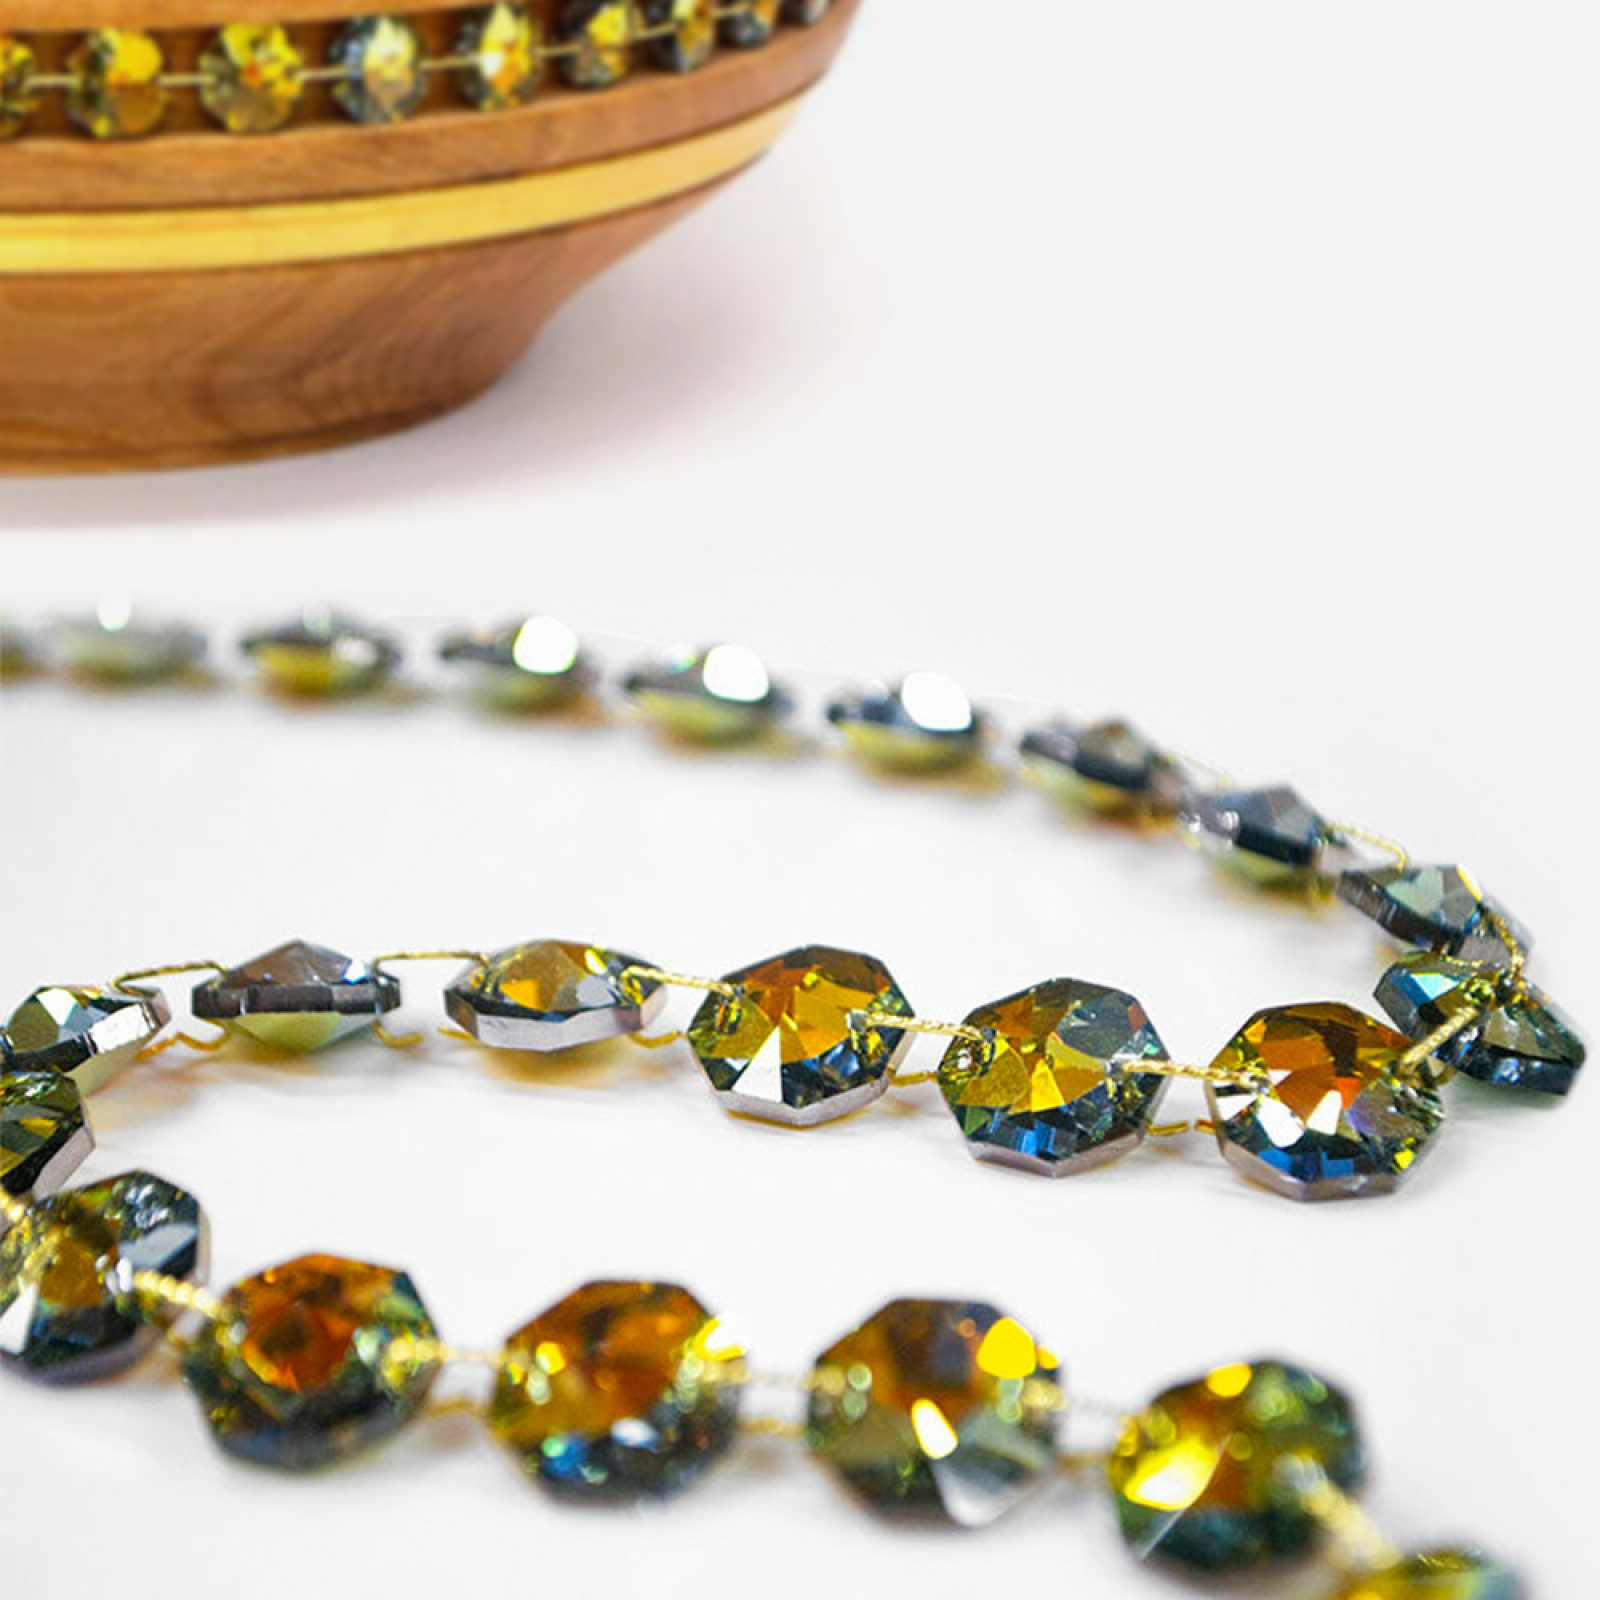 Amestris -Crystals from famous jewellers | Natalis Luxus